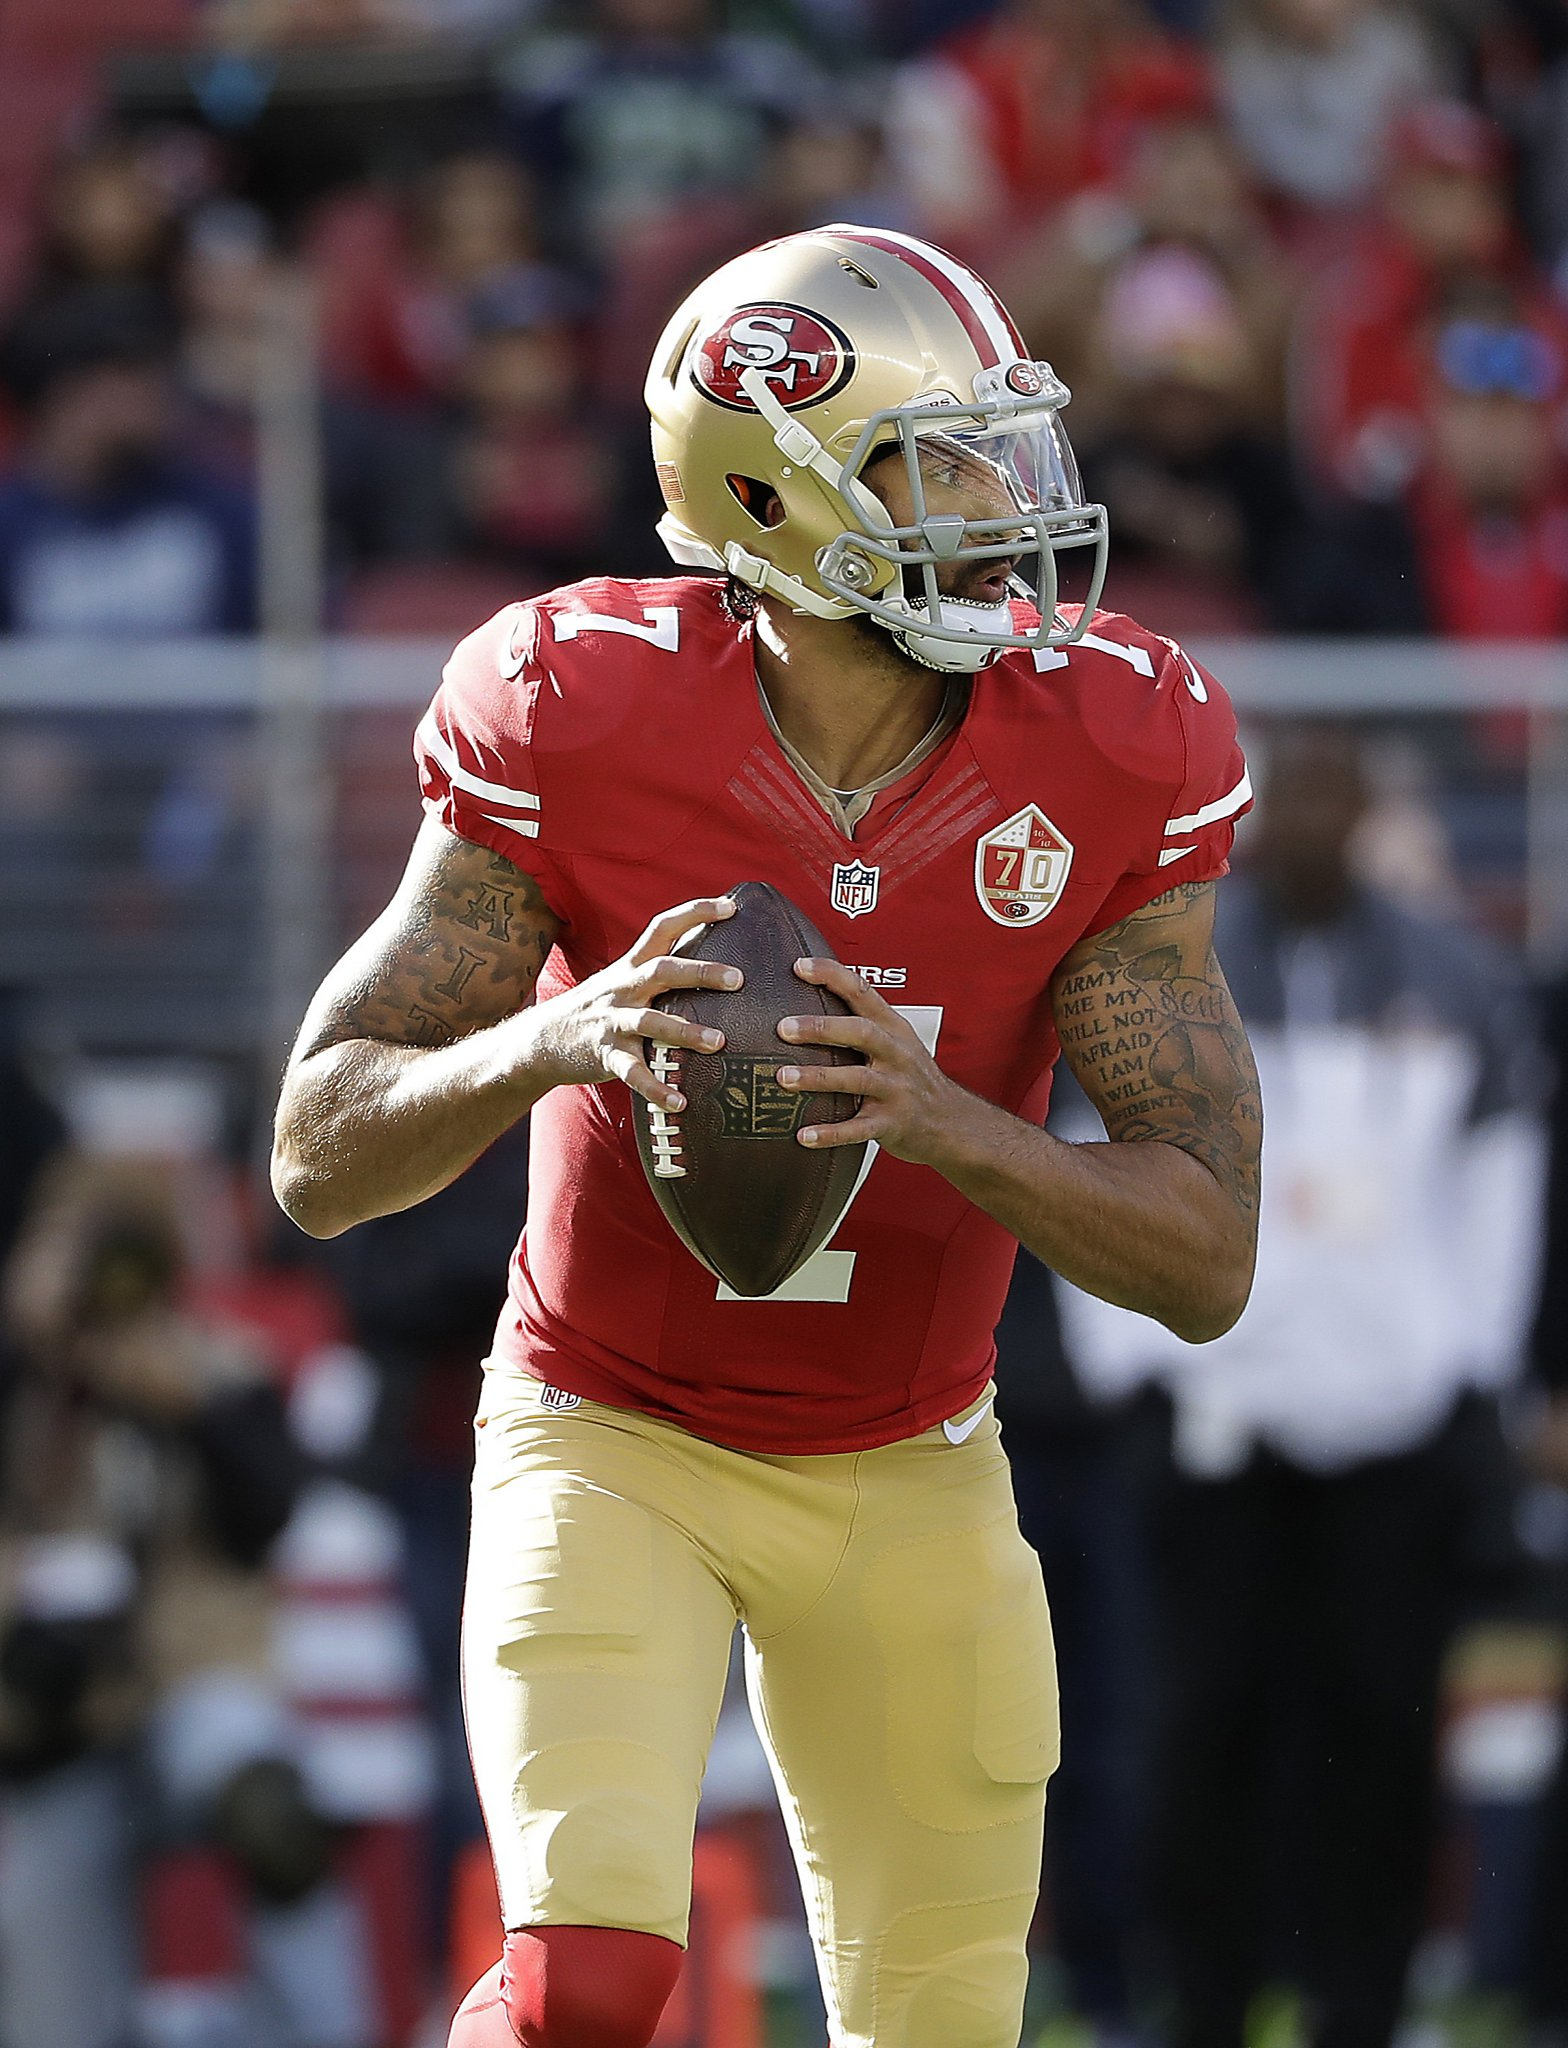 Report 49ers qb colin kaepernick will become free agent sfgate